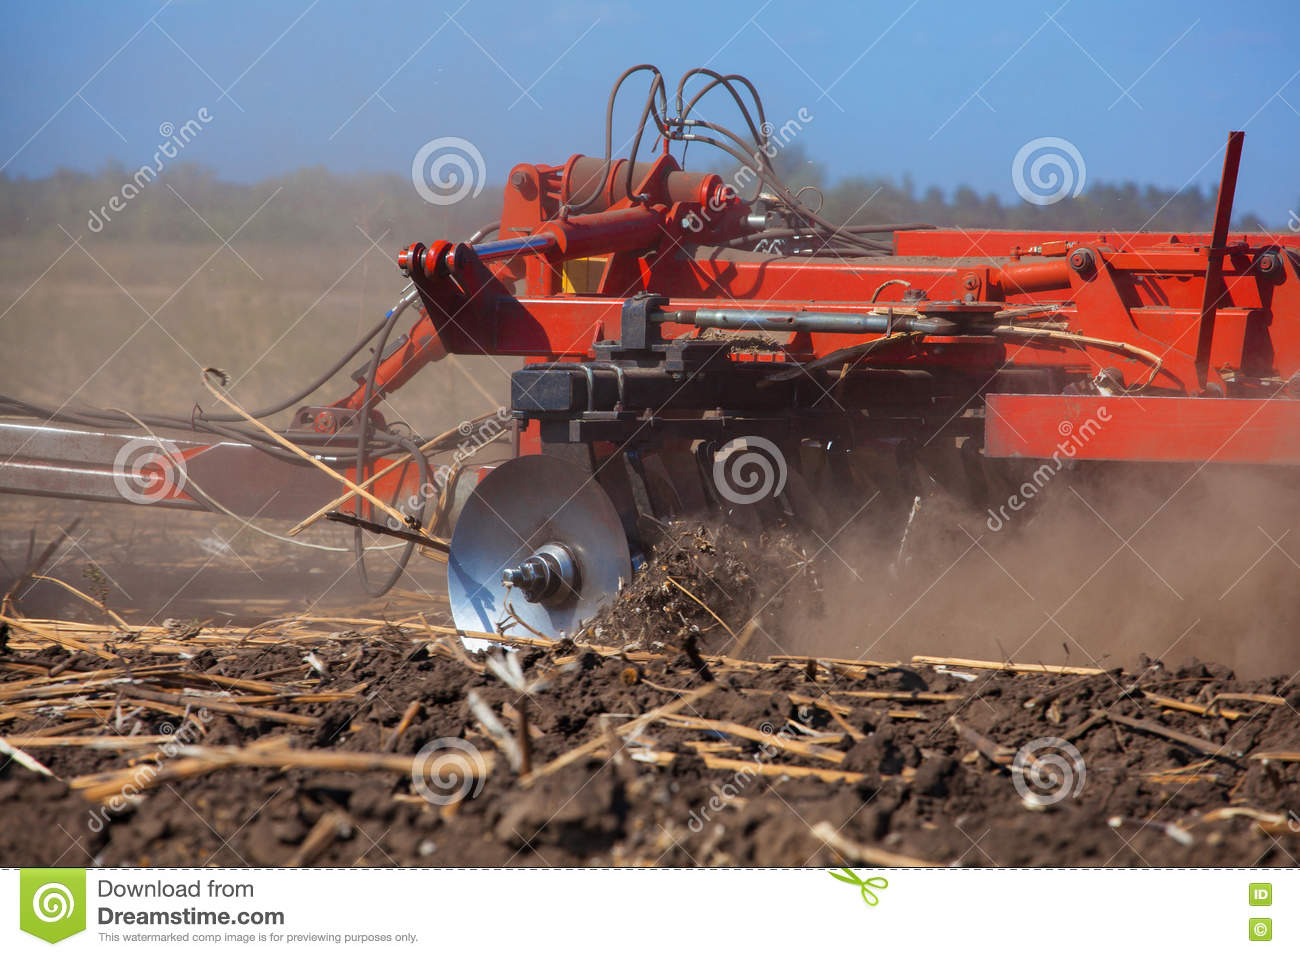 Large tractor pulling a plow and plow the field, remove the remnants of the previously beveled sunflower.